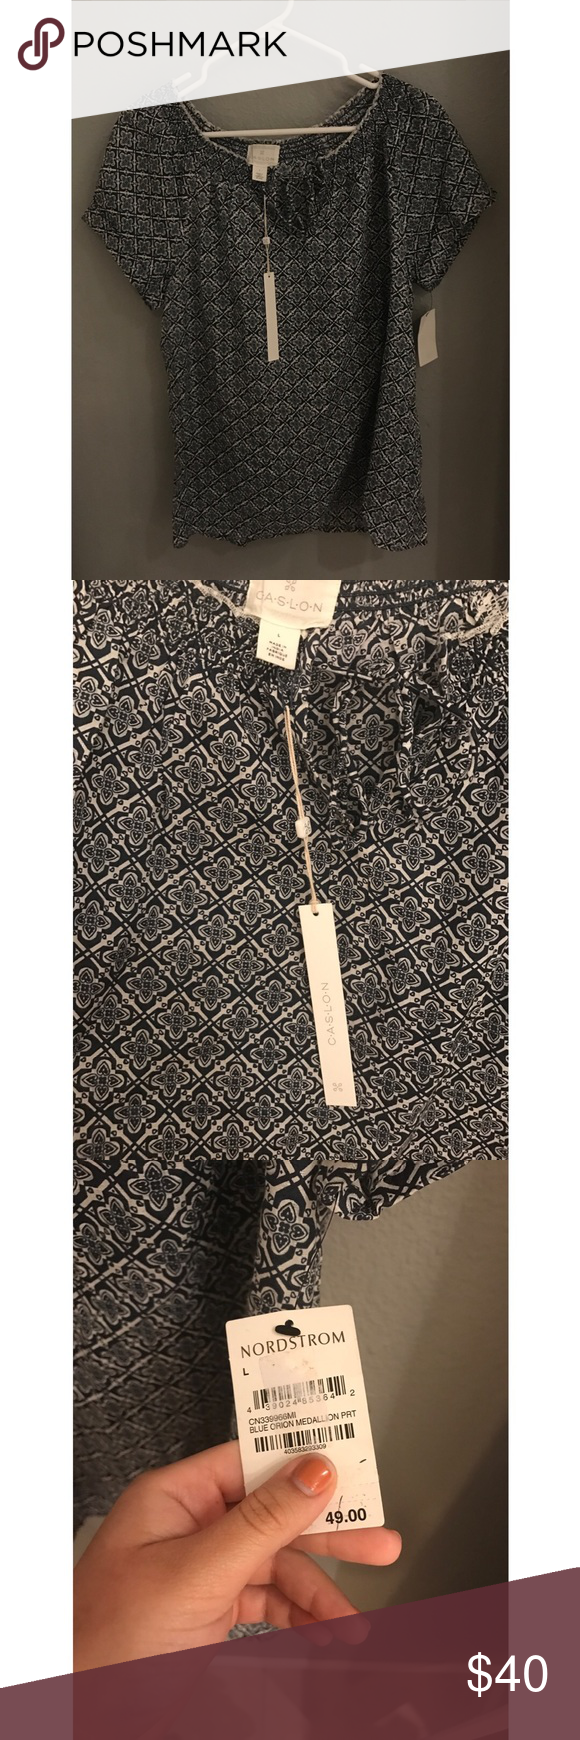 Nordstrom Peasant Top NWT, purchased from Nordstrom's. Nordstrom Tops